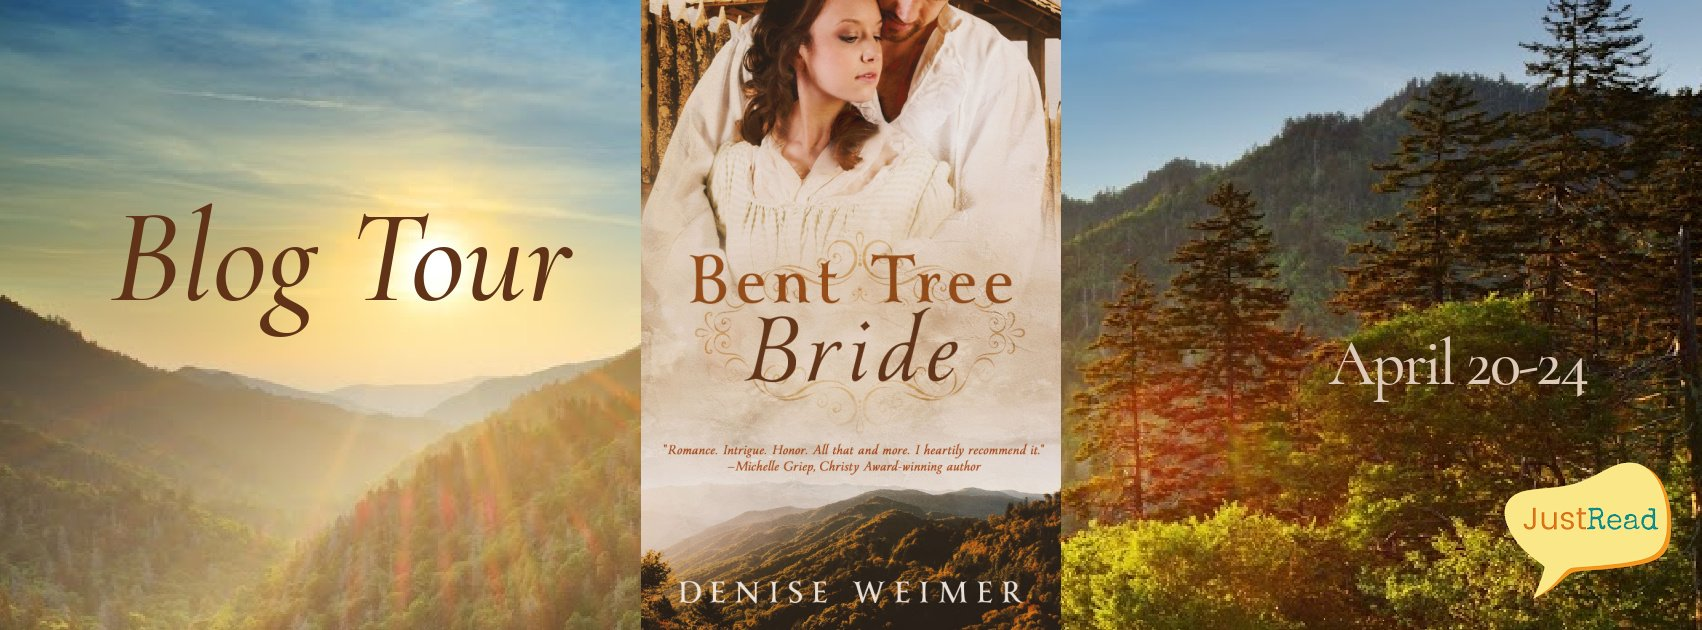 Bent Tree Bride JustRead Blog Tour